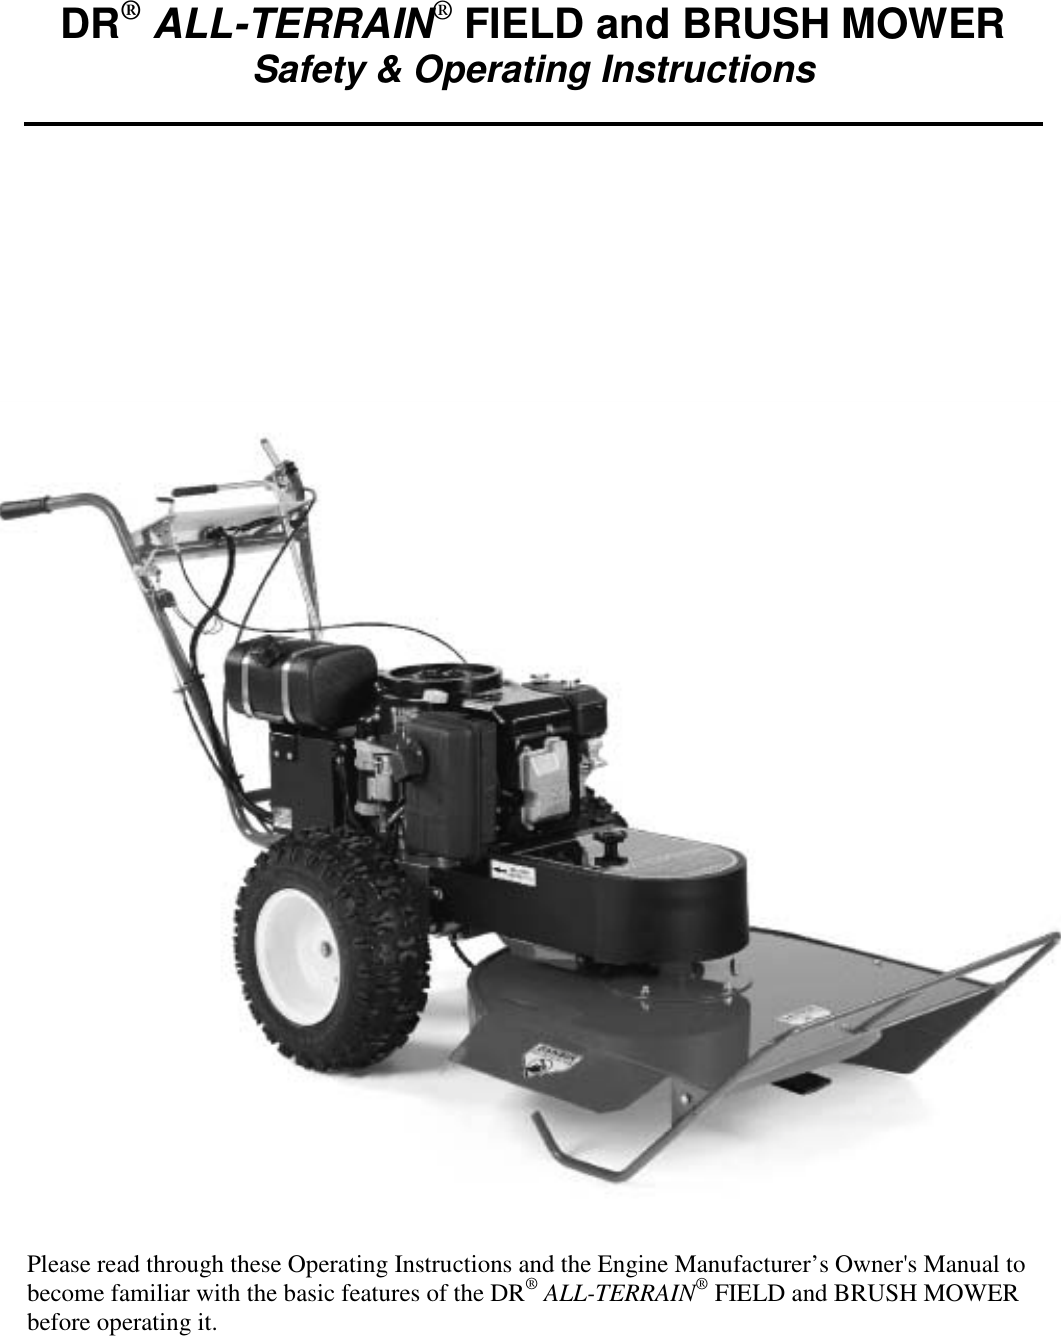 DR(r) ALL TERRAIN(r) FIELD And BRUSH MOWER !! 138341 At1 Ao 2001